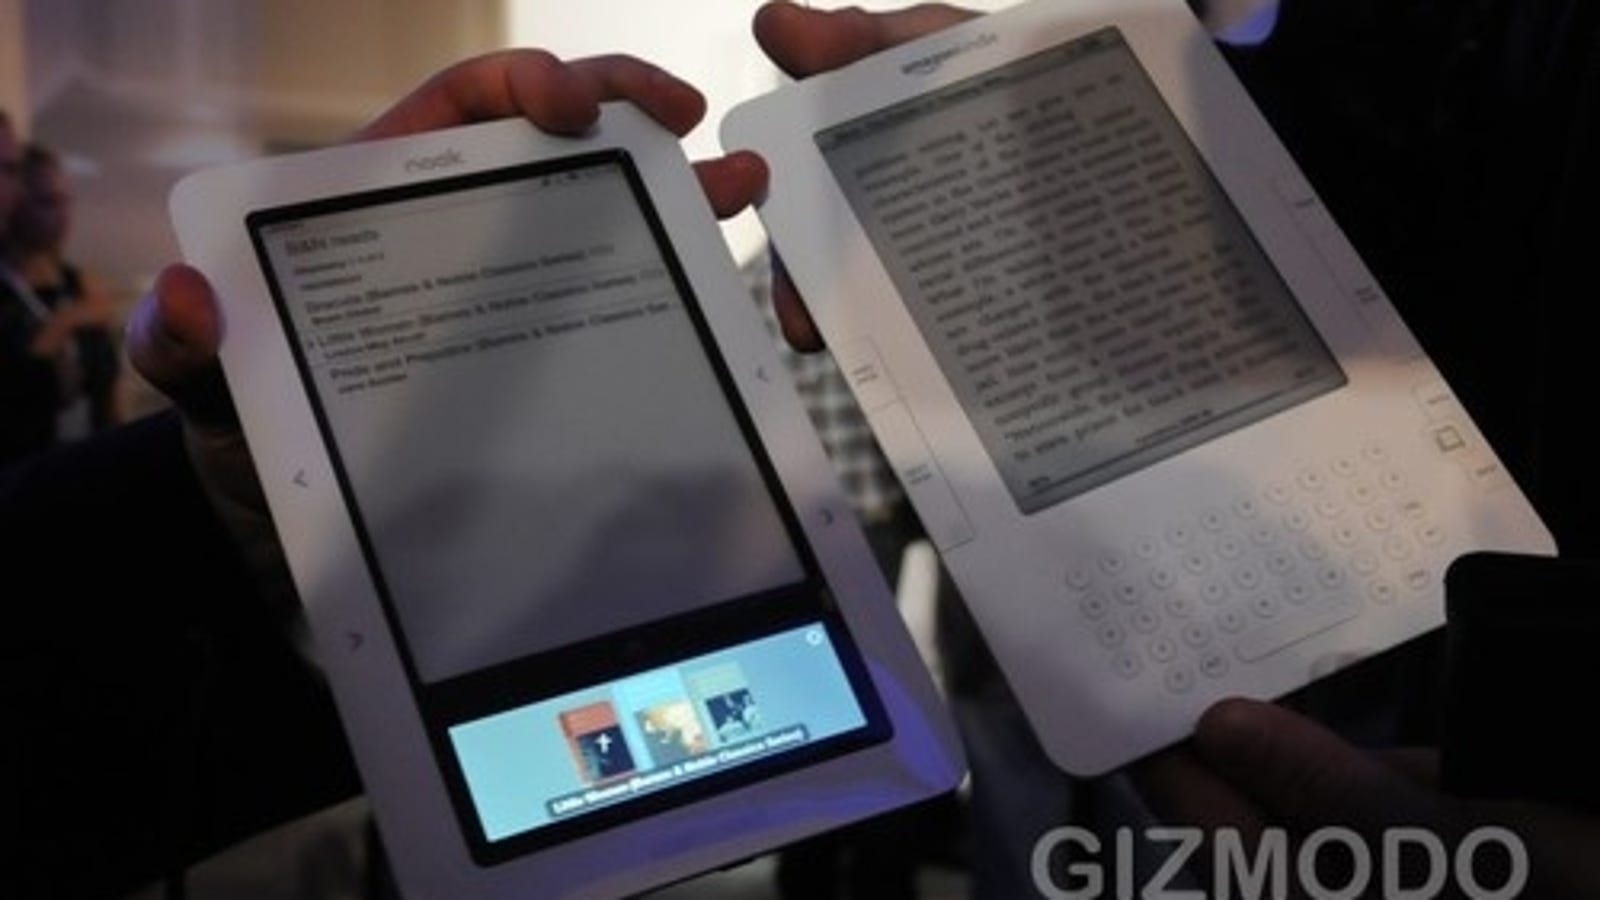 How To Ebook For Nook